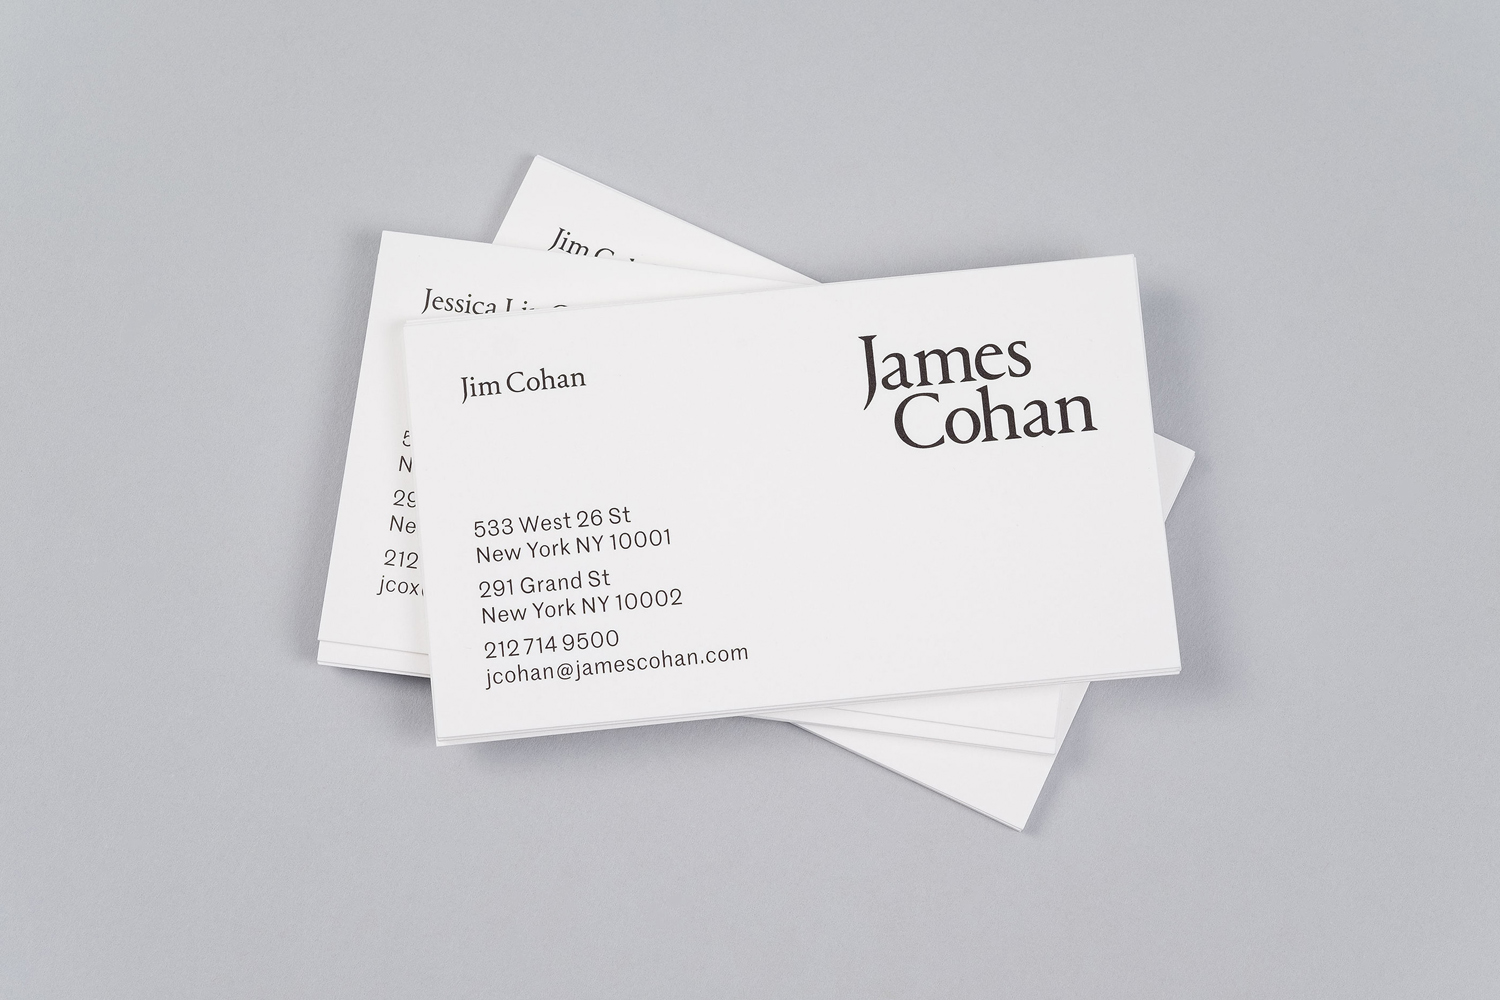 Brand identity and business cards for New York contemporary art gallery James Cohan by graphic design studio Project Projects